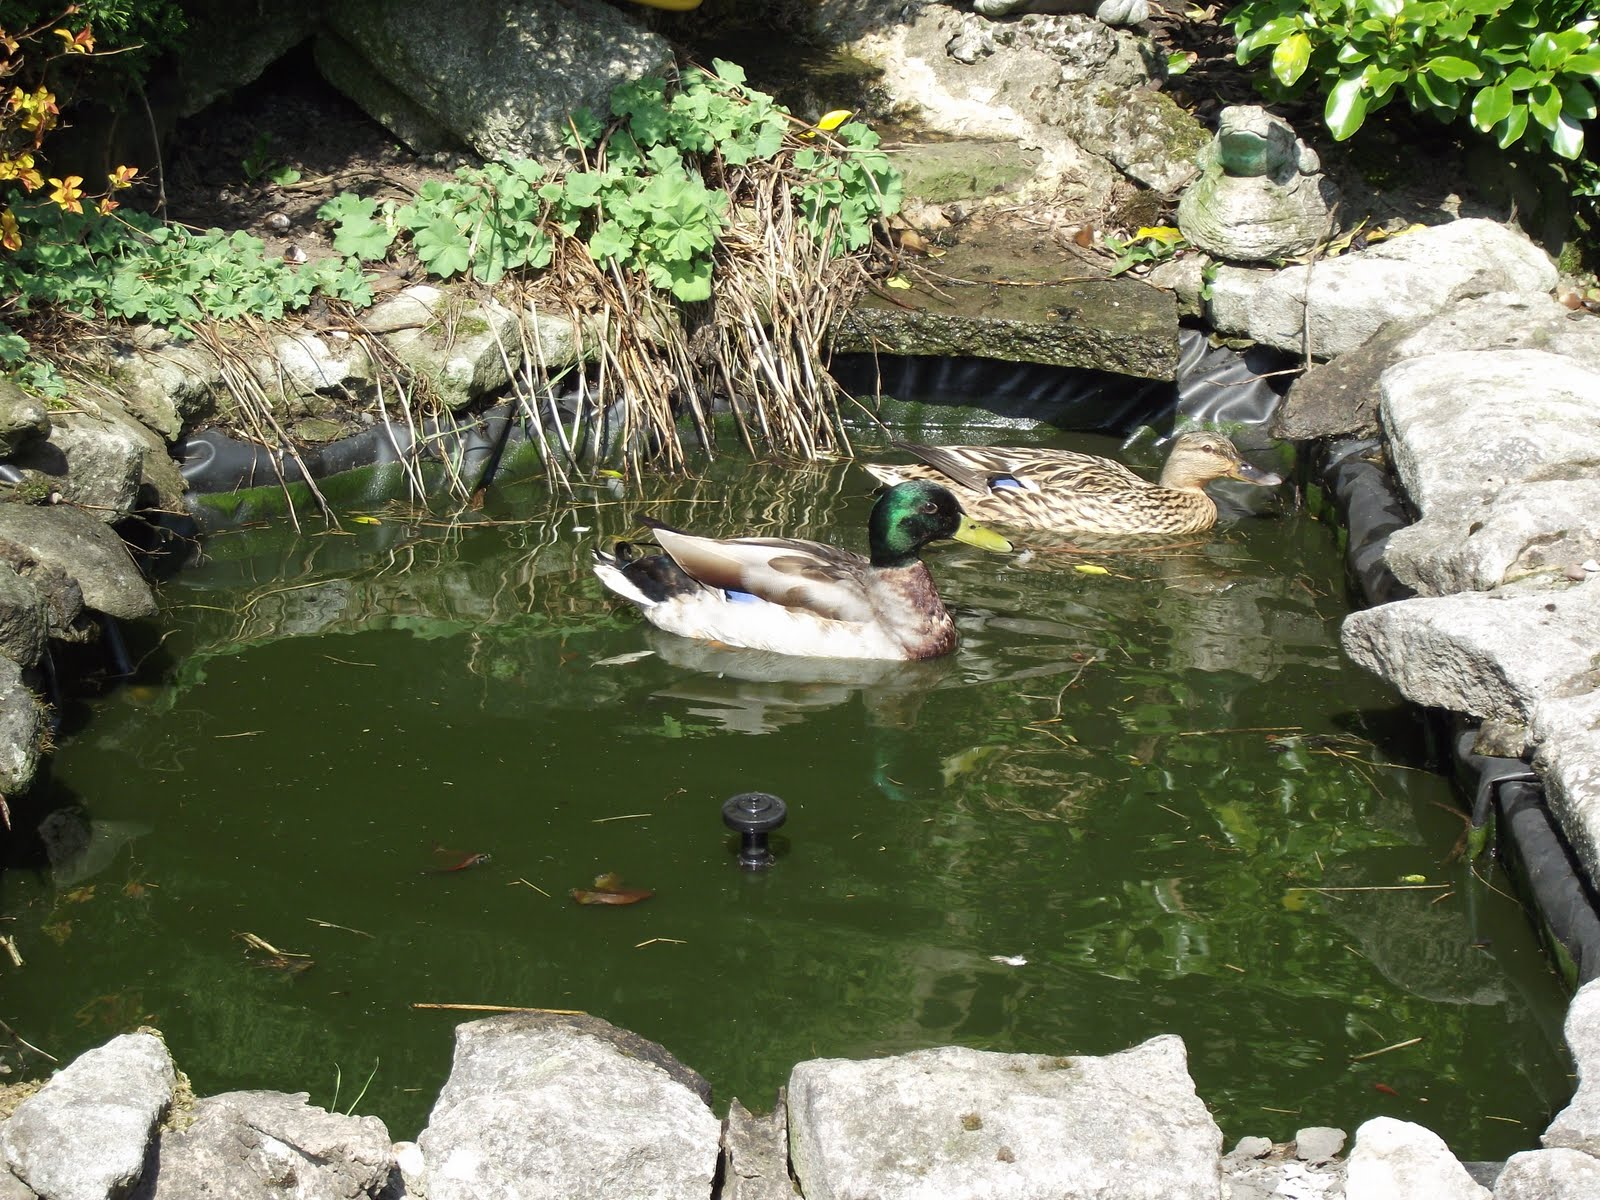 We had two ducks on the garden pond this afternoon being watched by